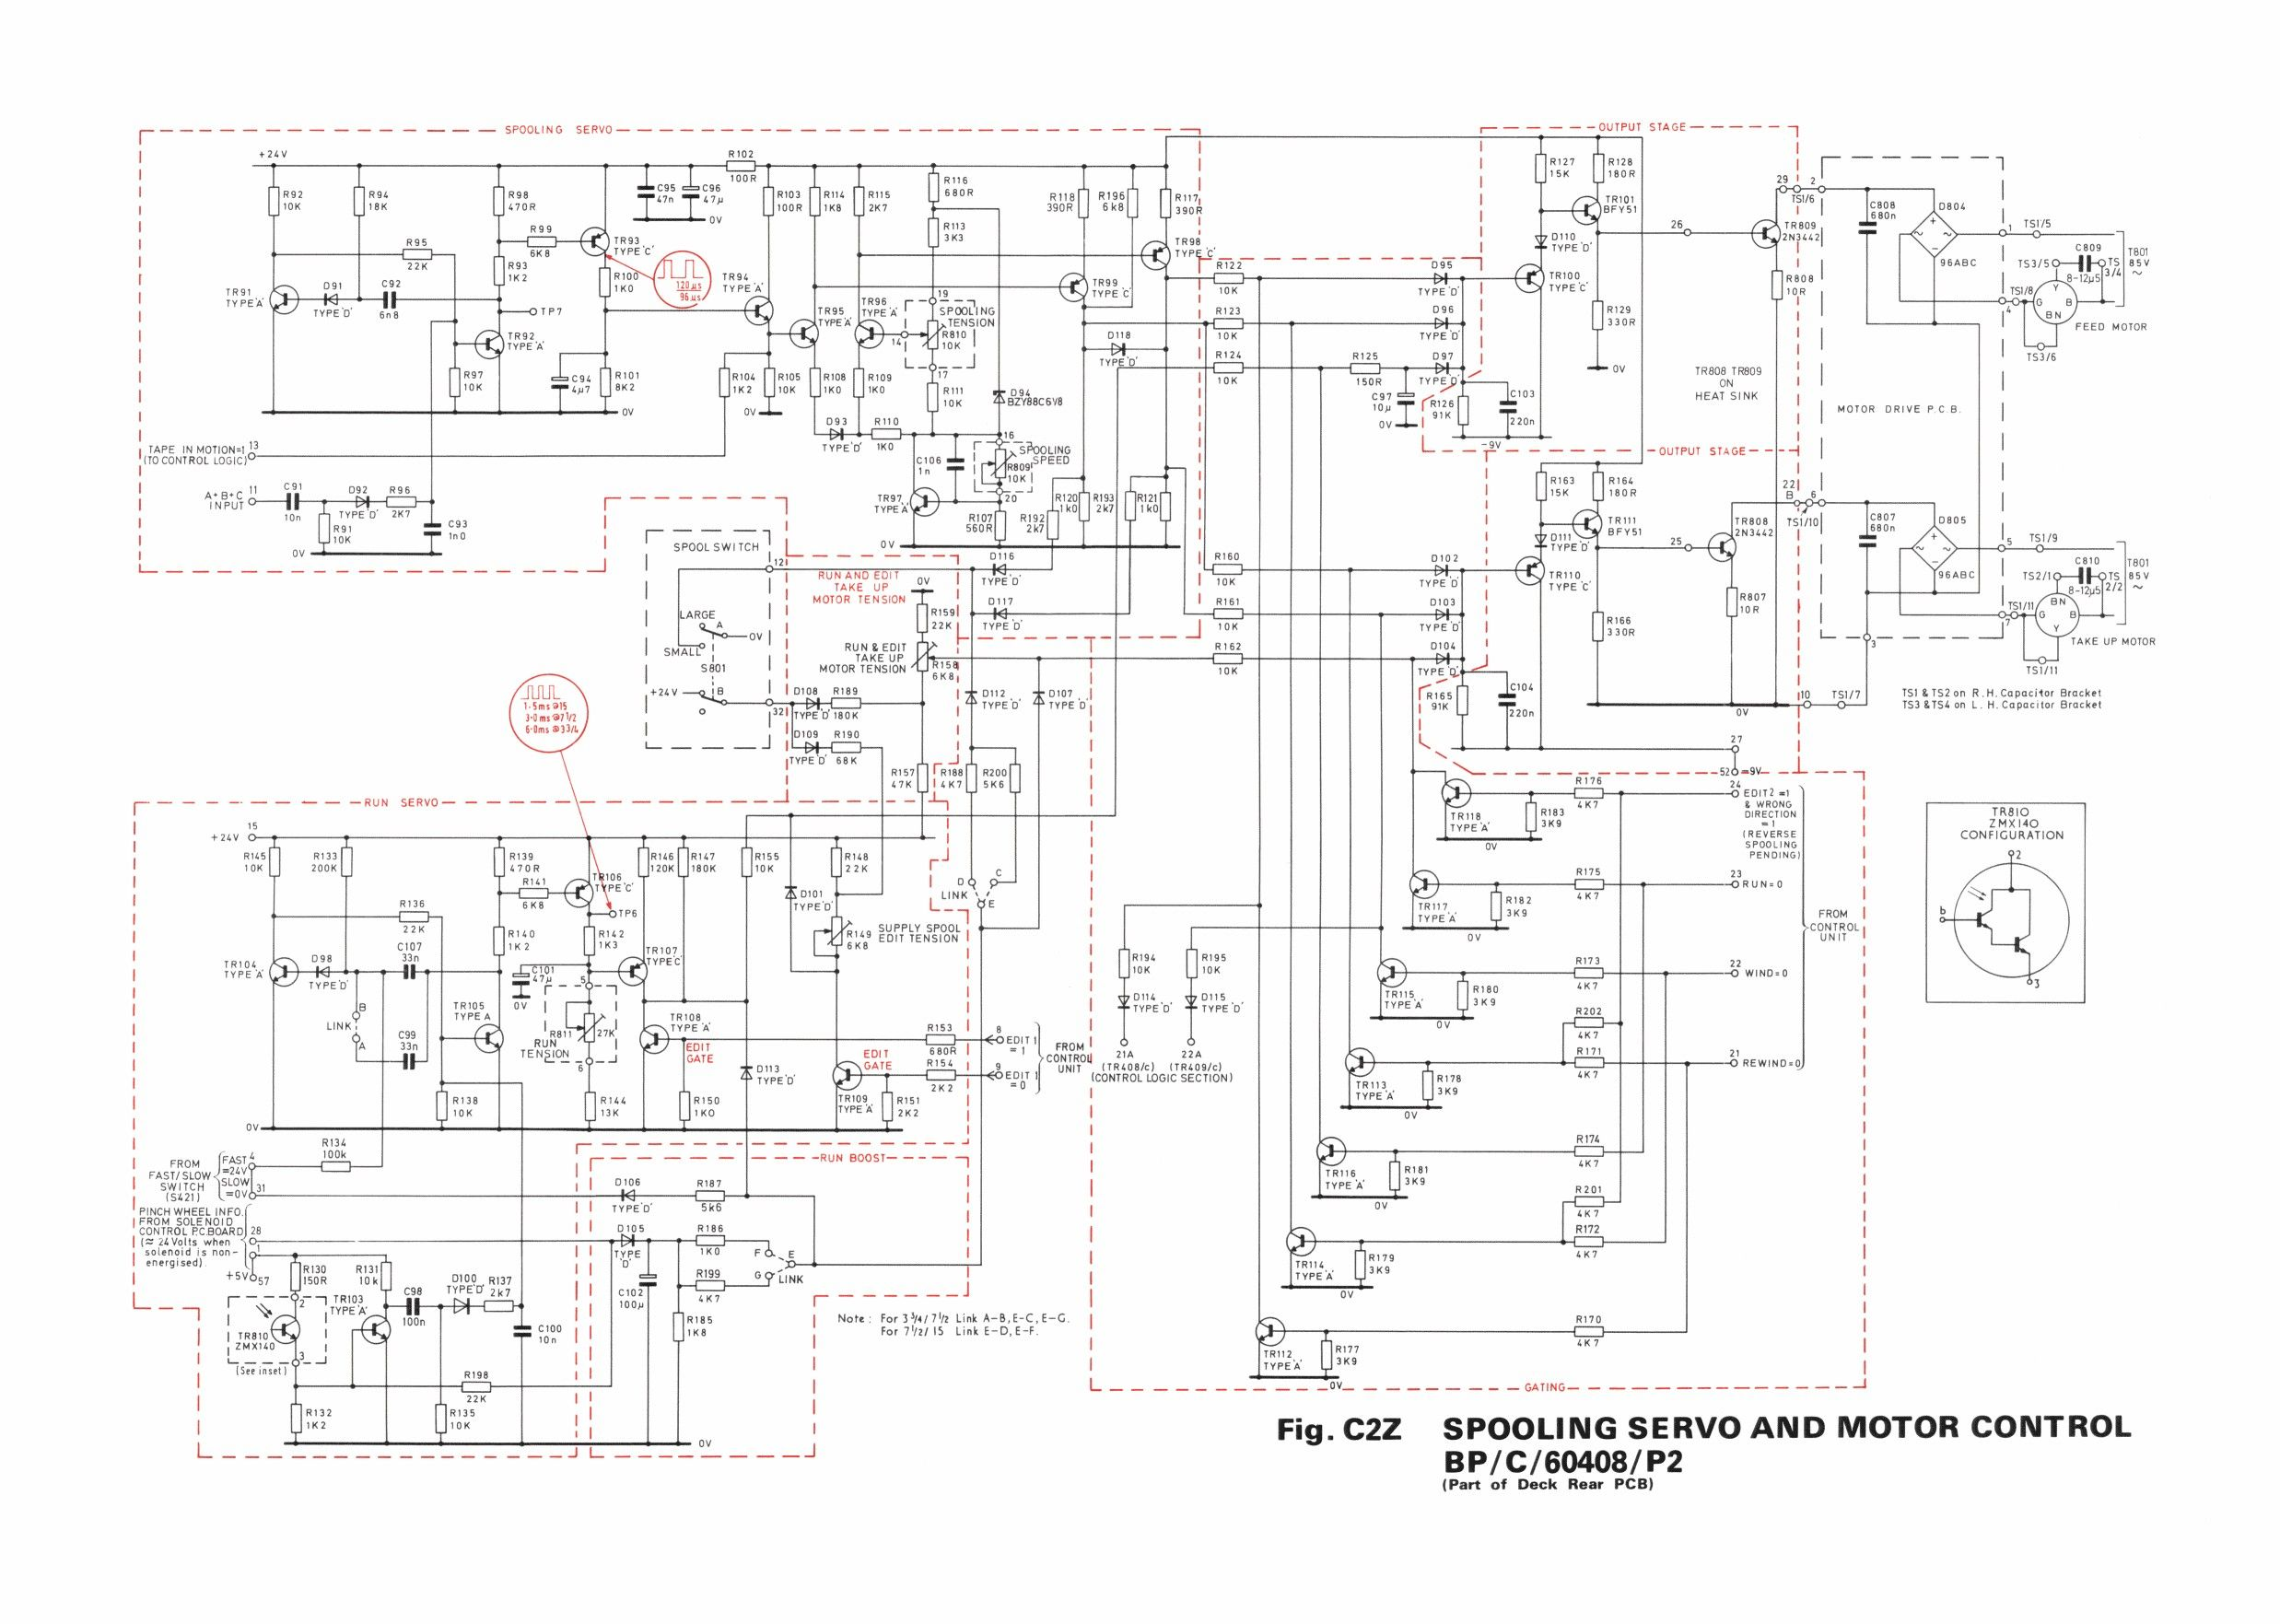 25 Good Sample Of Motor Control Panel Wiring Diagram